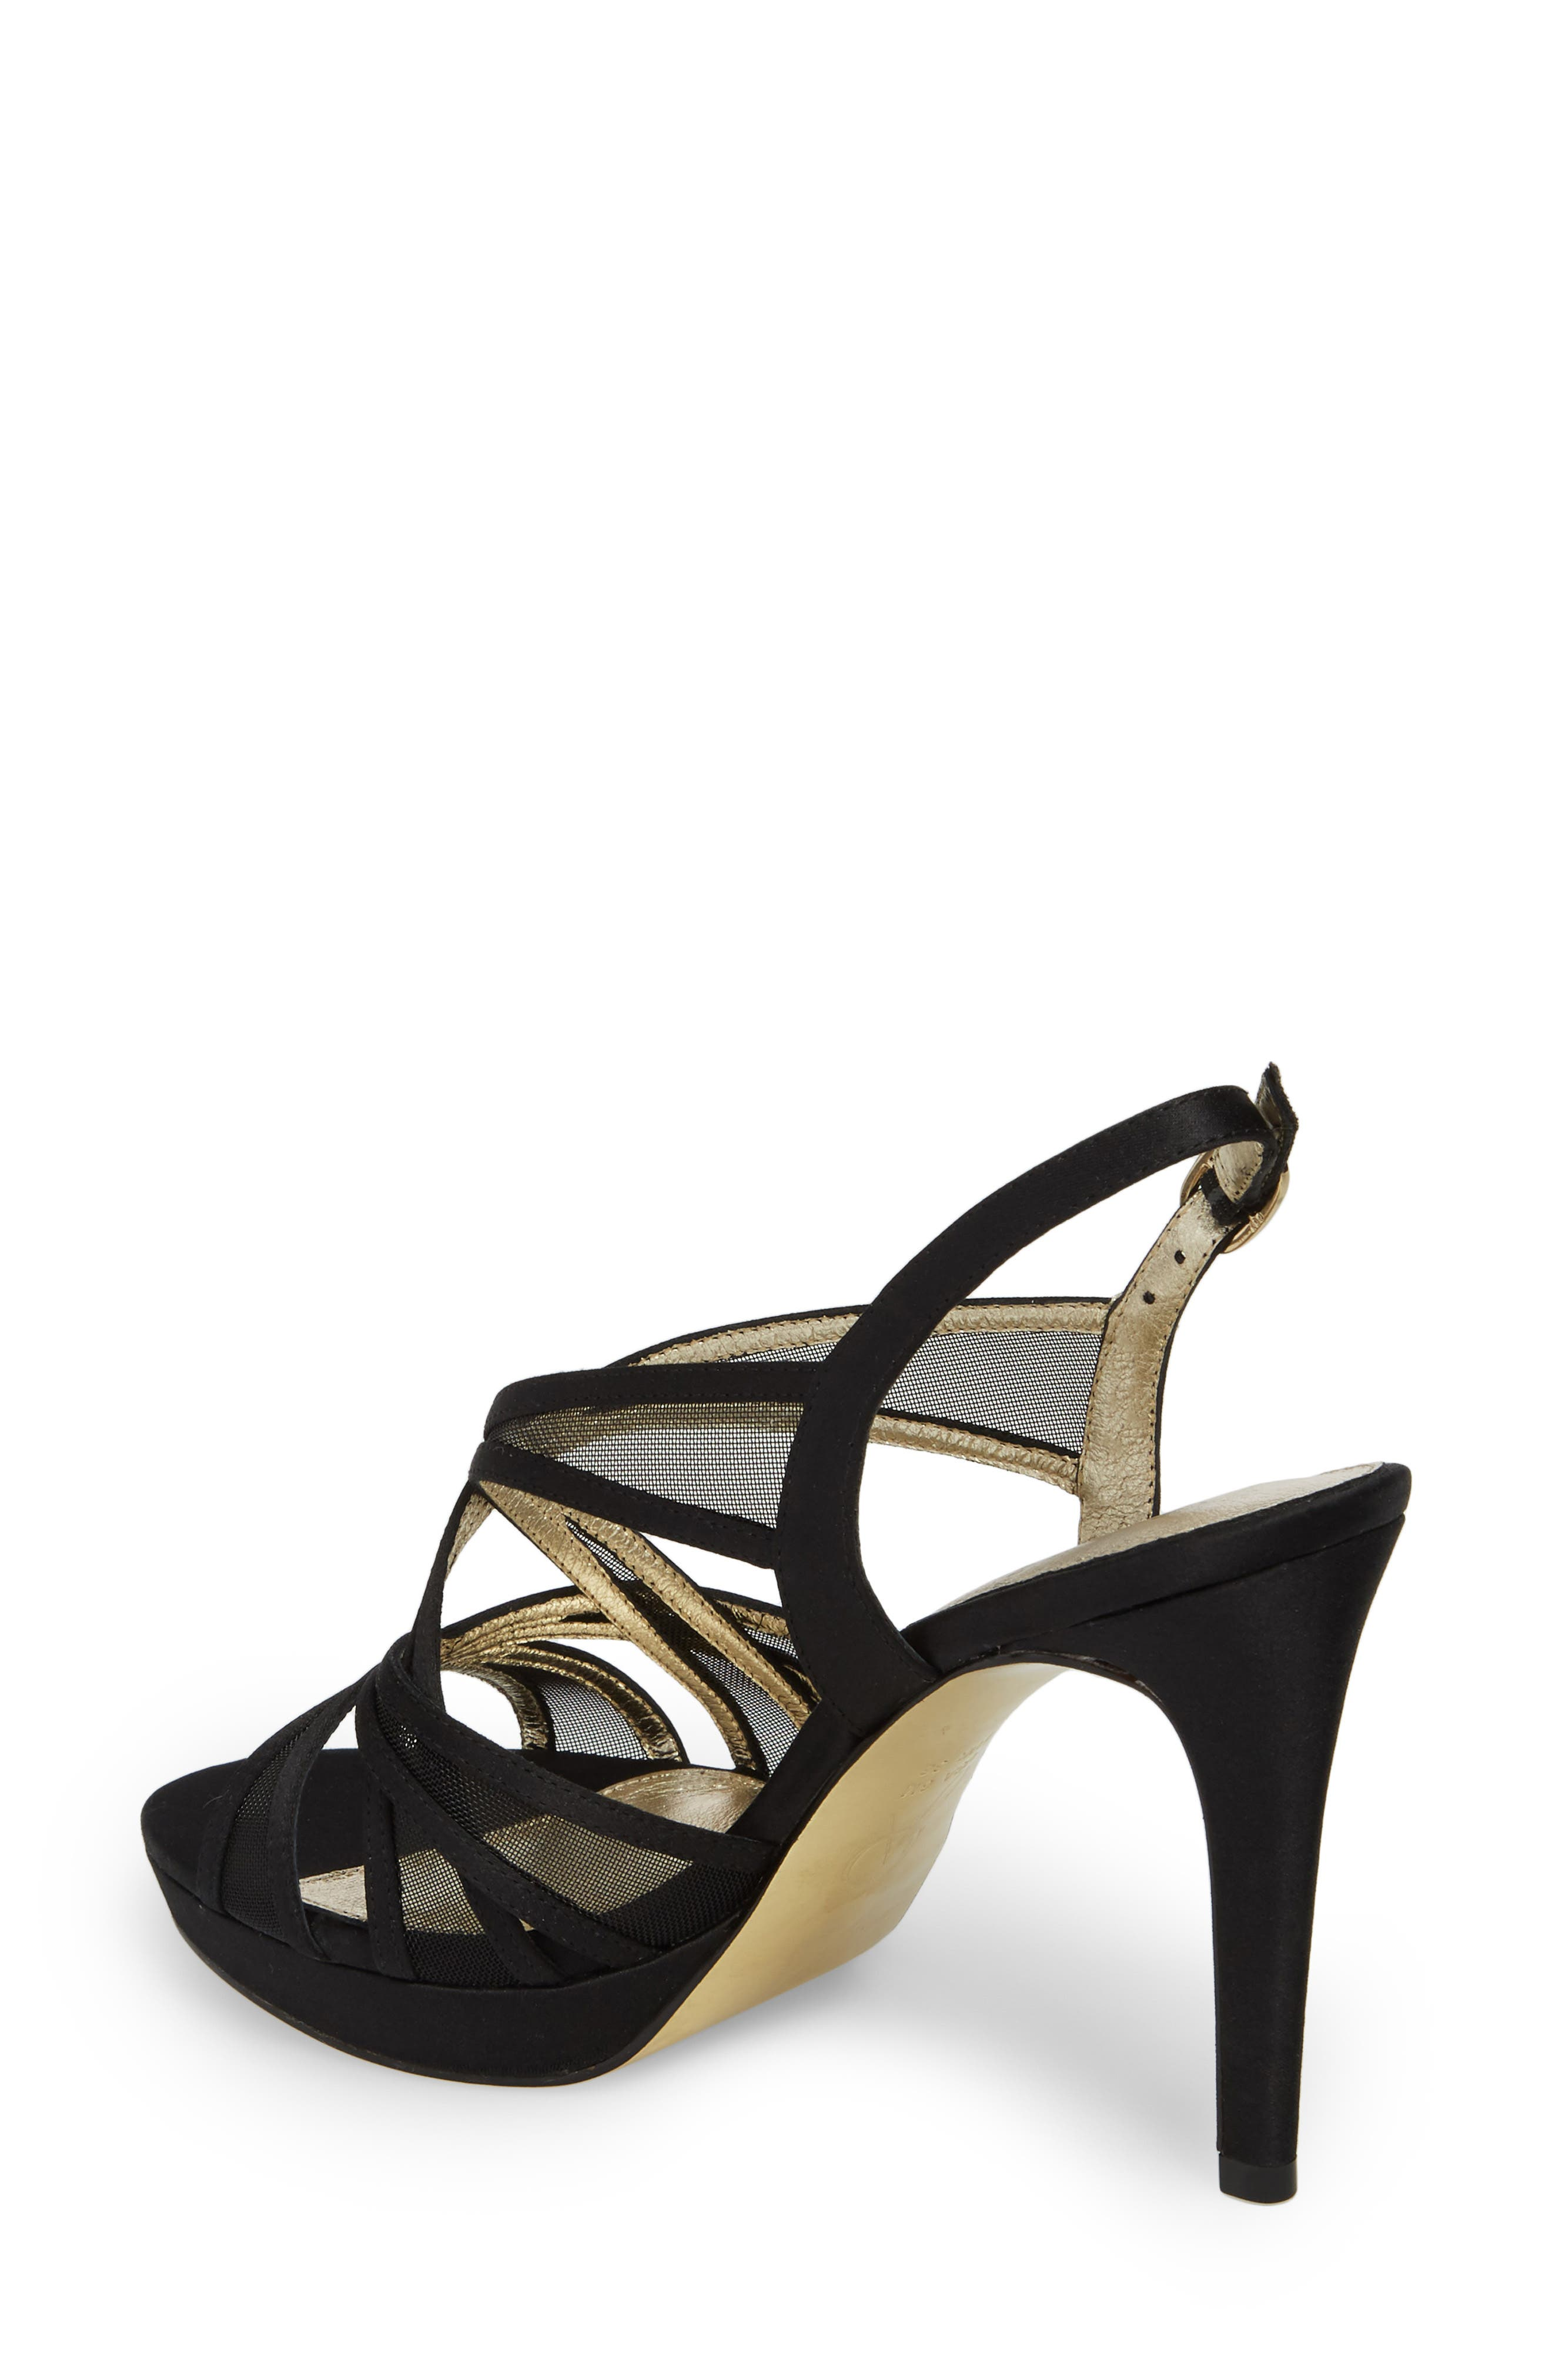 Adri Platform Sandal,                             Alternate thumbnail 2, color,                             Black Satin